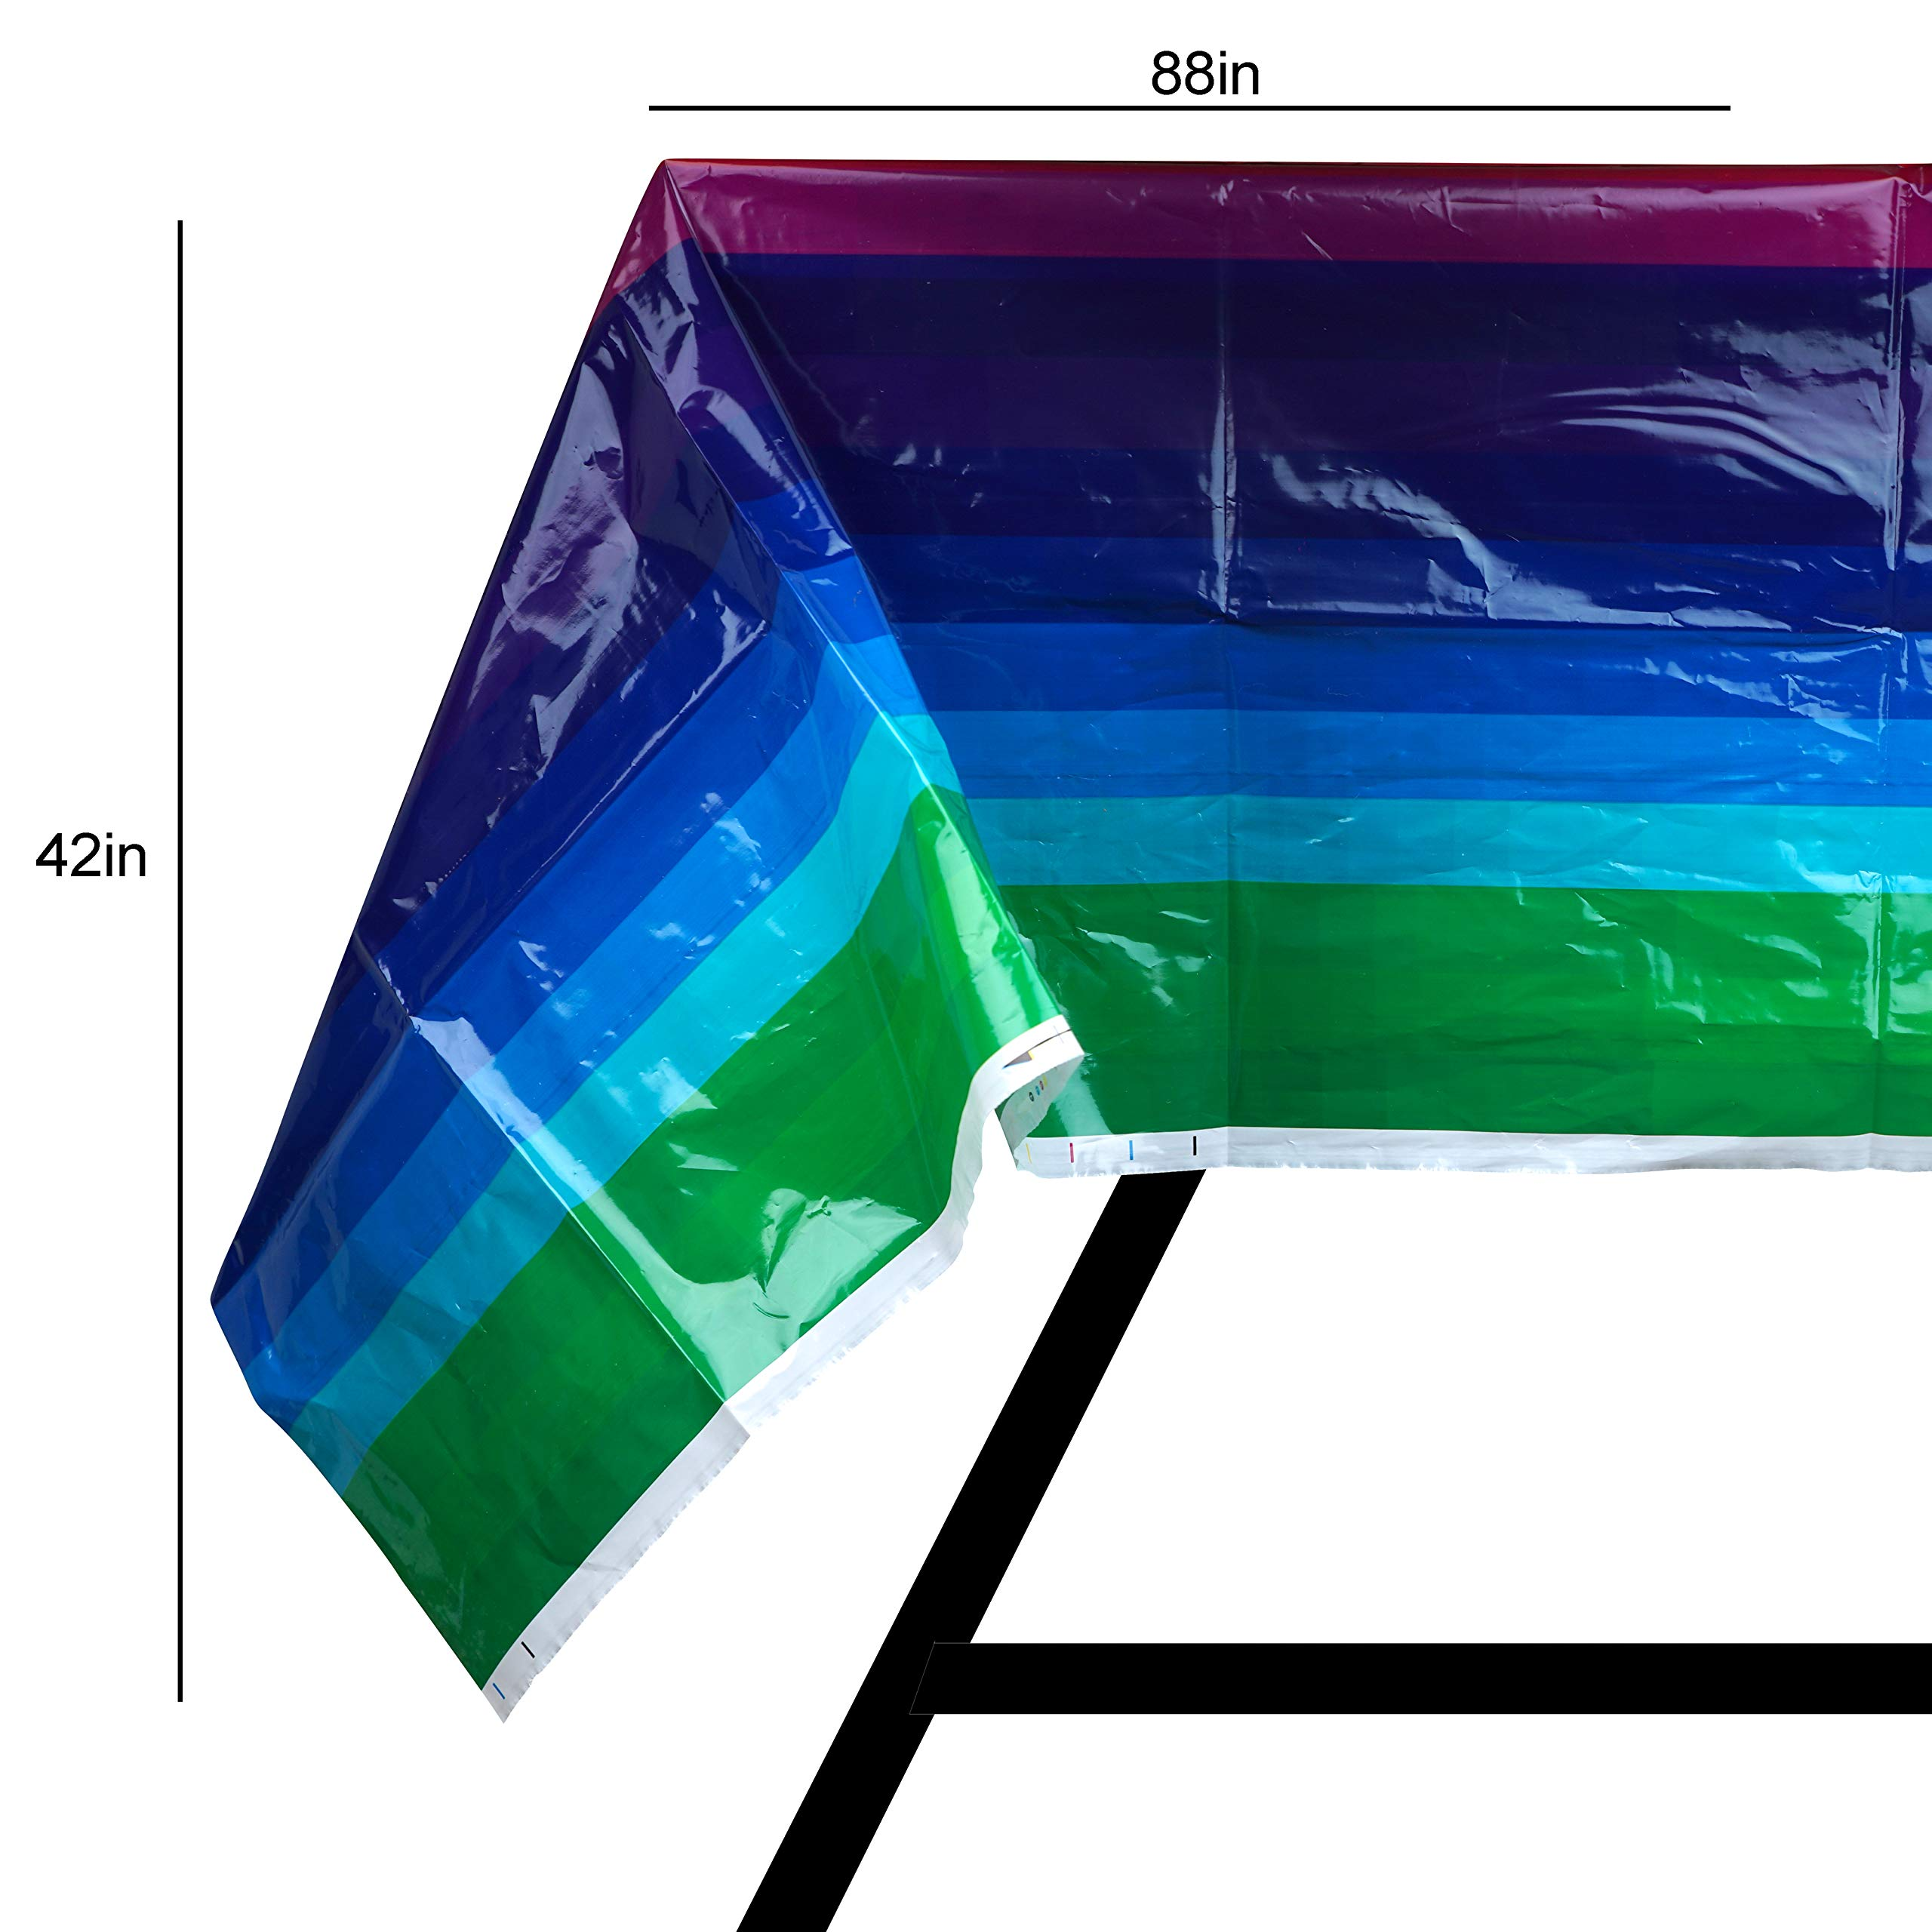 82 Piece Rainbow Party Set Including Banner, Plates, Cups, Napkins and Tablecloth, Serves 20 by Scale Rank (Image #7)